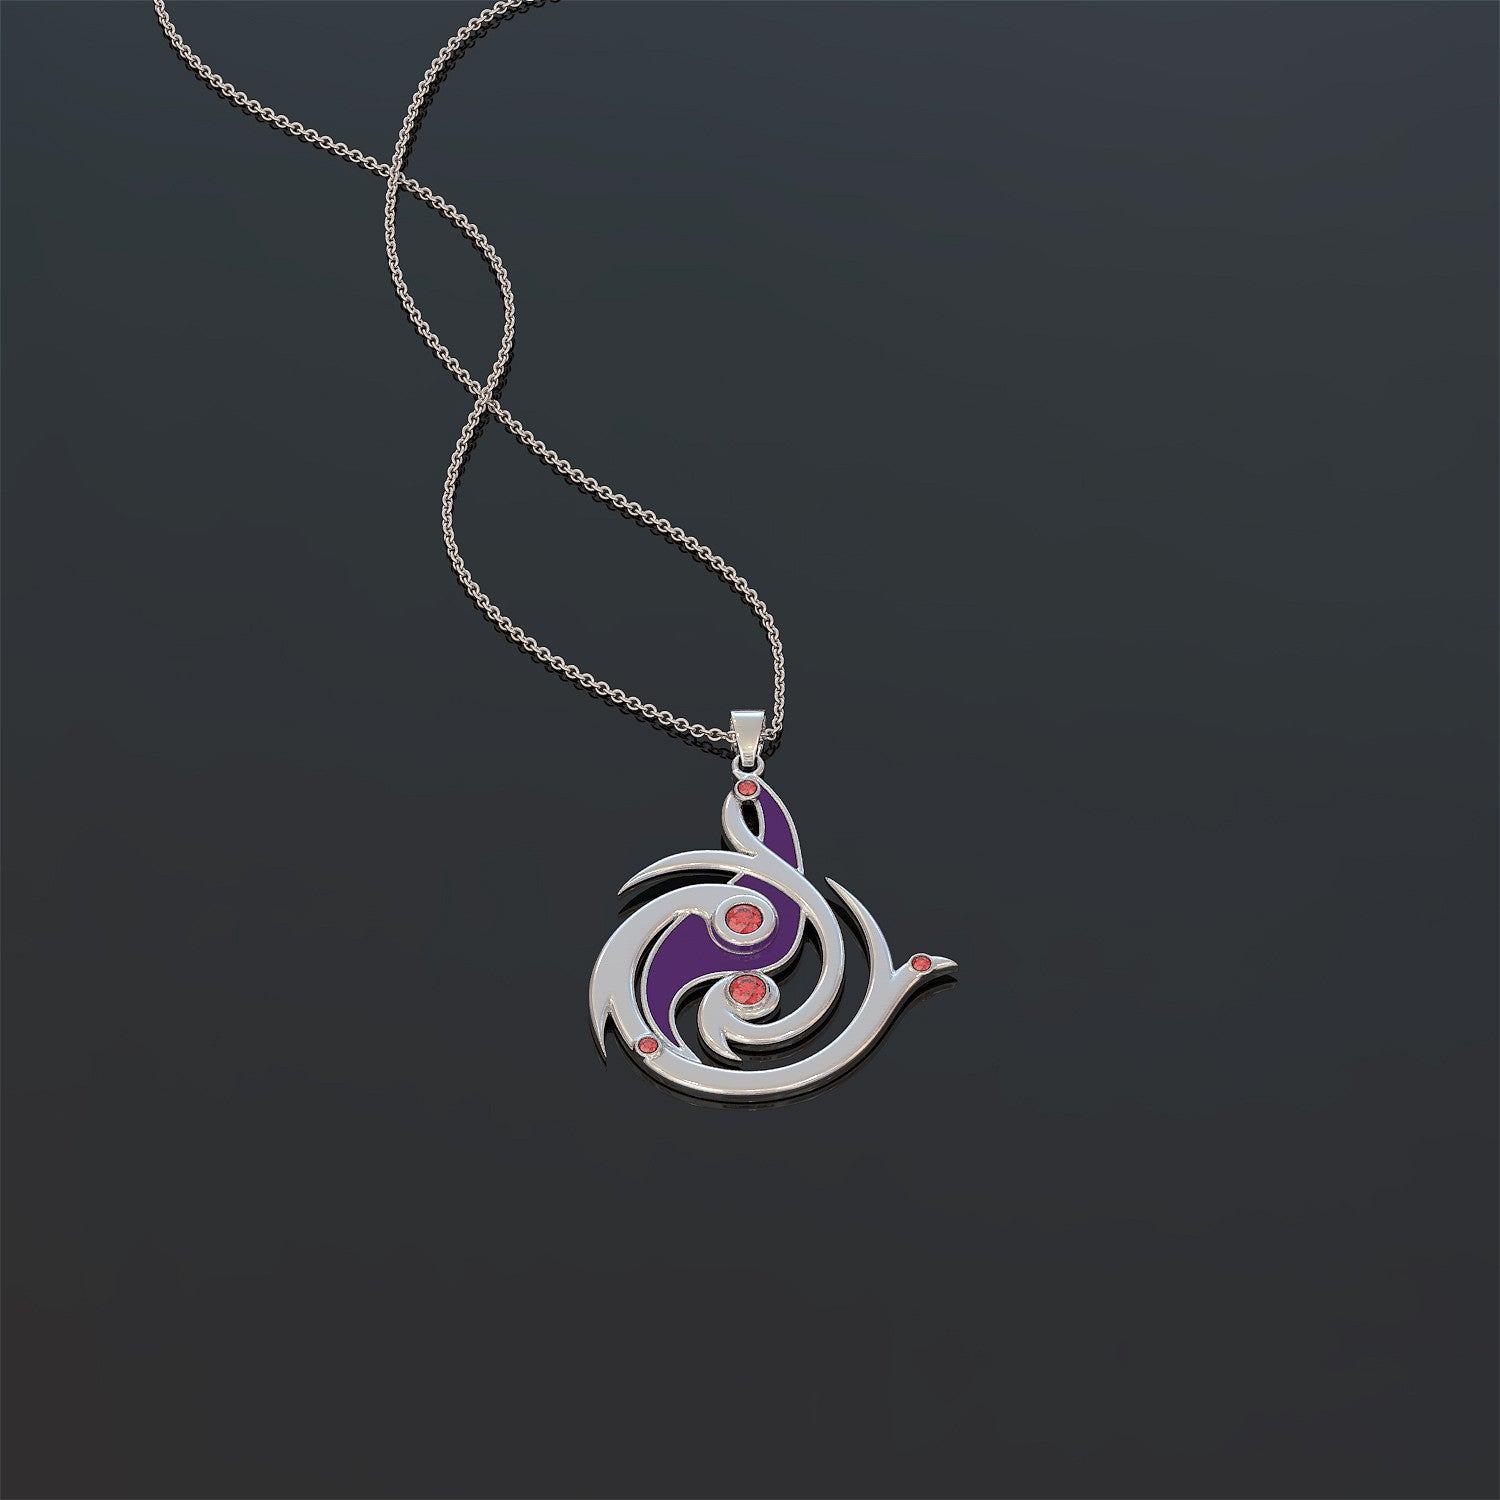 Starsign Cancer - Necklace